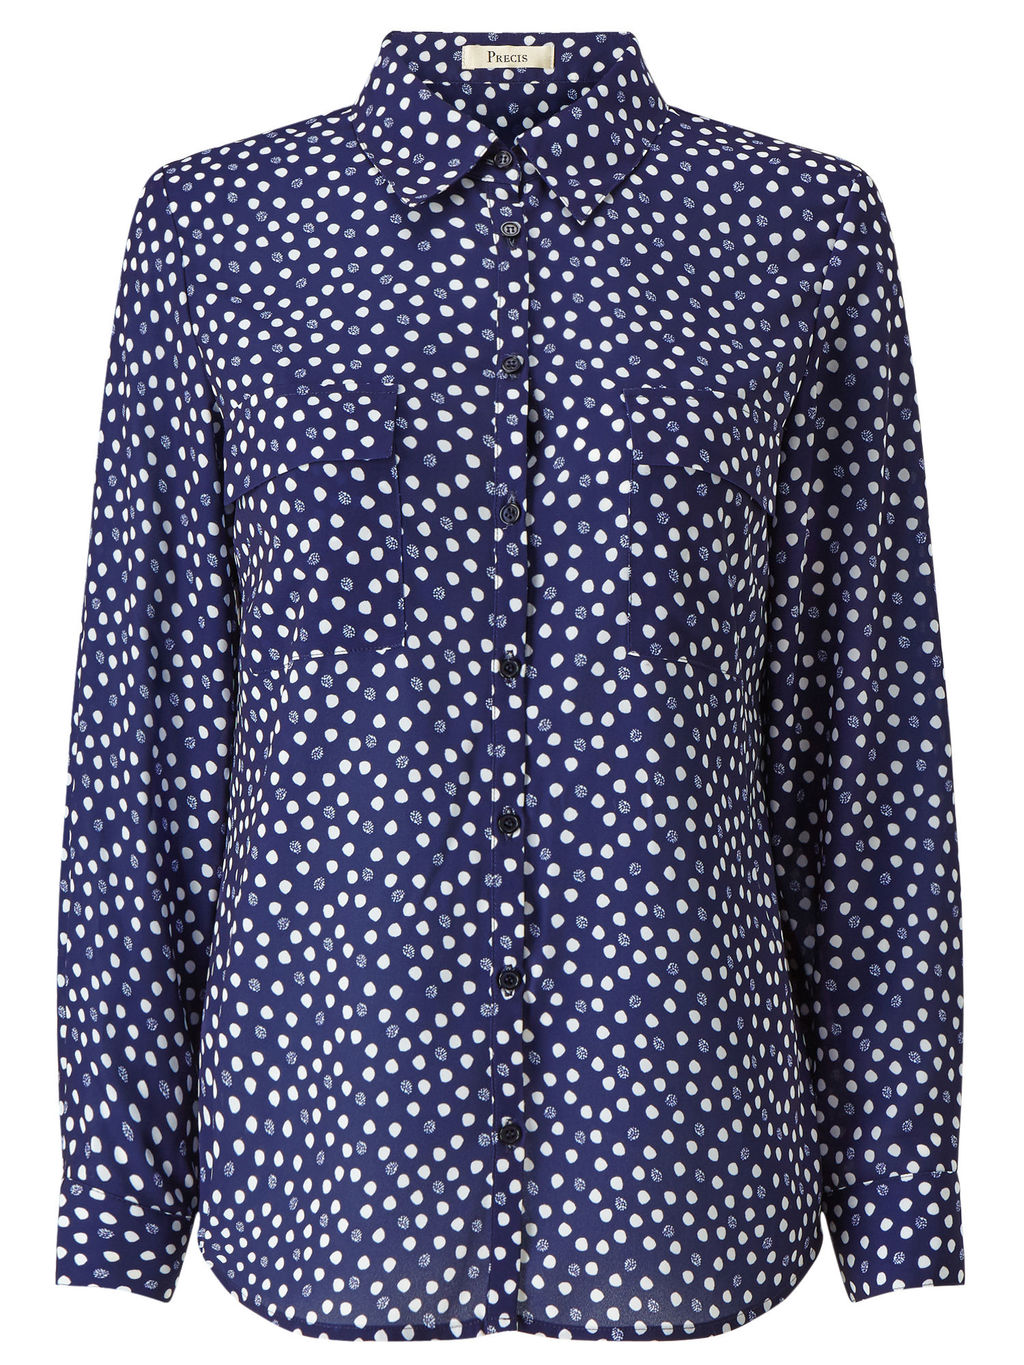 Ivy Spot Print Blouse - neckline: shirt collar/peter pan/zip with opening; style: shirt; pattern: polka dot; secondary colour: white; predominant colour: royal blue; occasions: casual; length: standard; fibres: polyester/polyamide - mix; fit: body skimming; sleeve length: long sleeve; sleeve style: standard; pattern type: fabric; pattern size: standard; texture group: other - light to midweight; multicoloured: multicoloured; season: s/s 2016